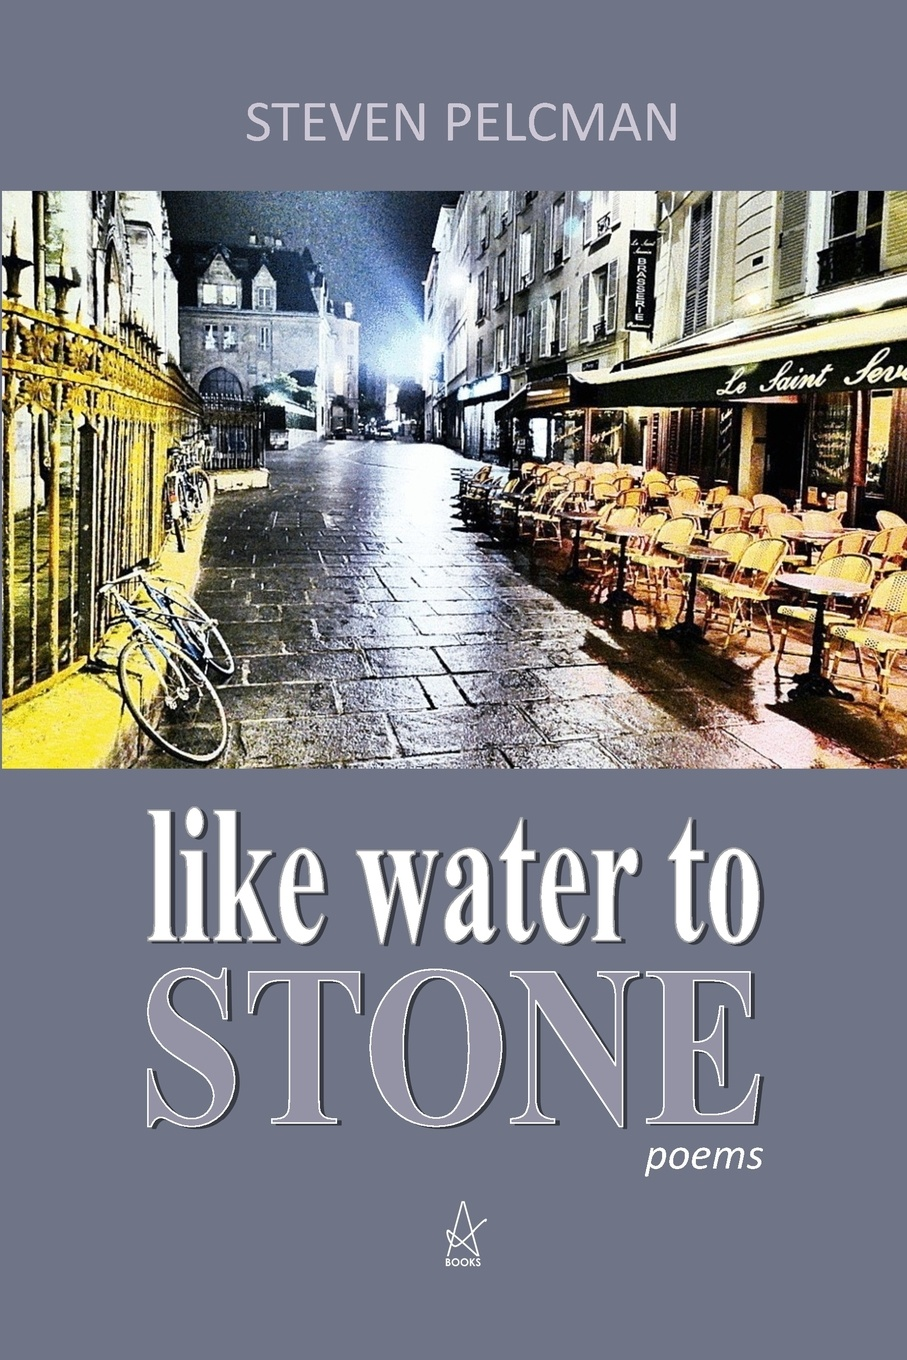 Mr. Steven Pelcman like water to STONE. A Collection of Poems